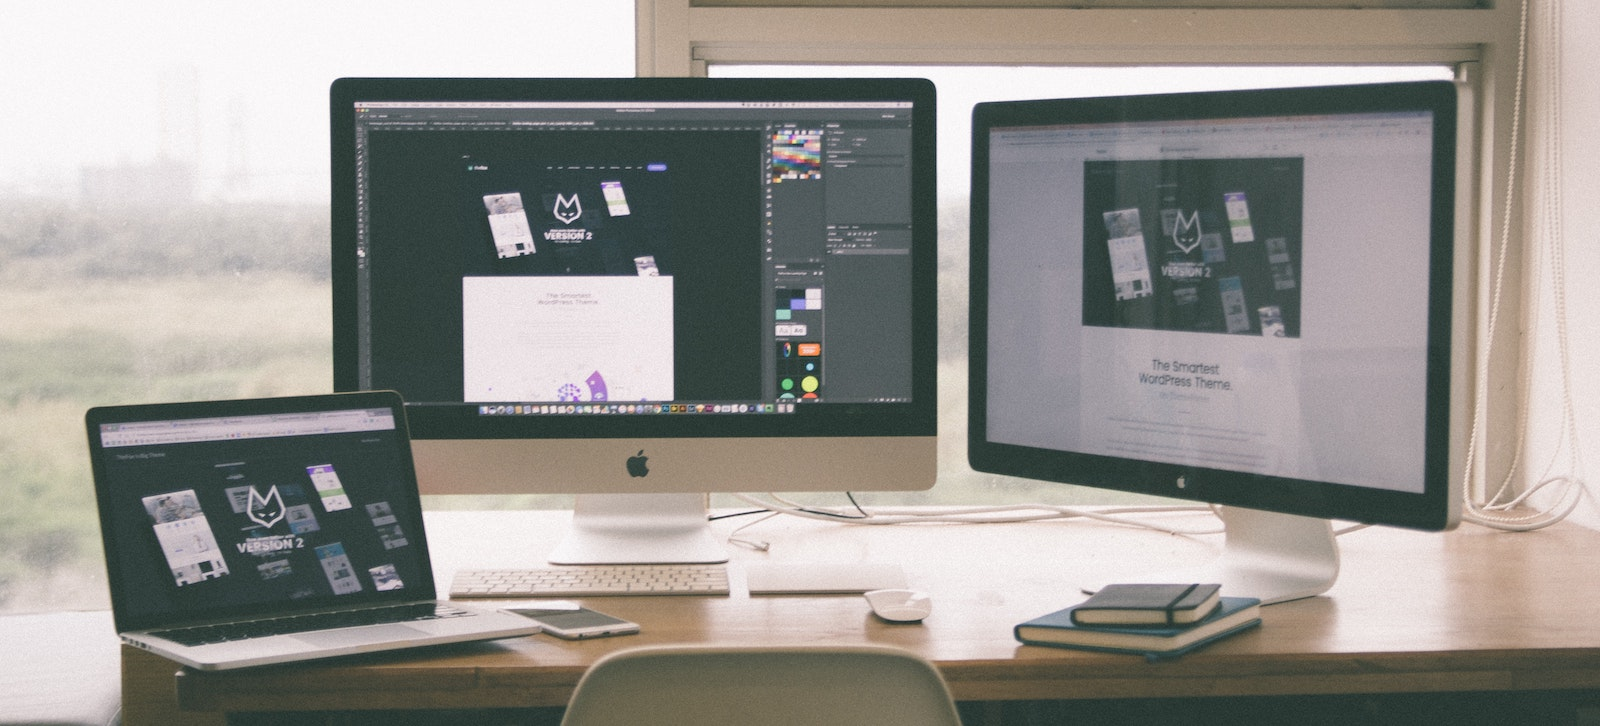 How do I use SEO when redesigning a website? Here's our Technical Guide